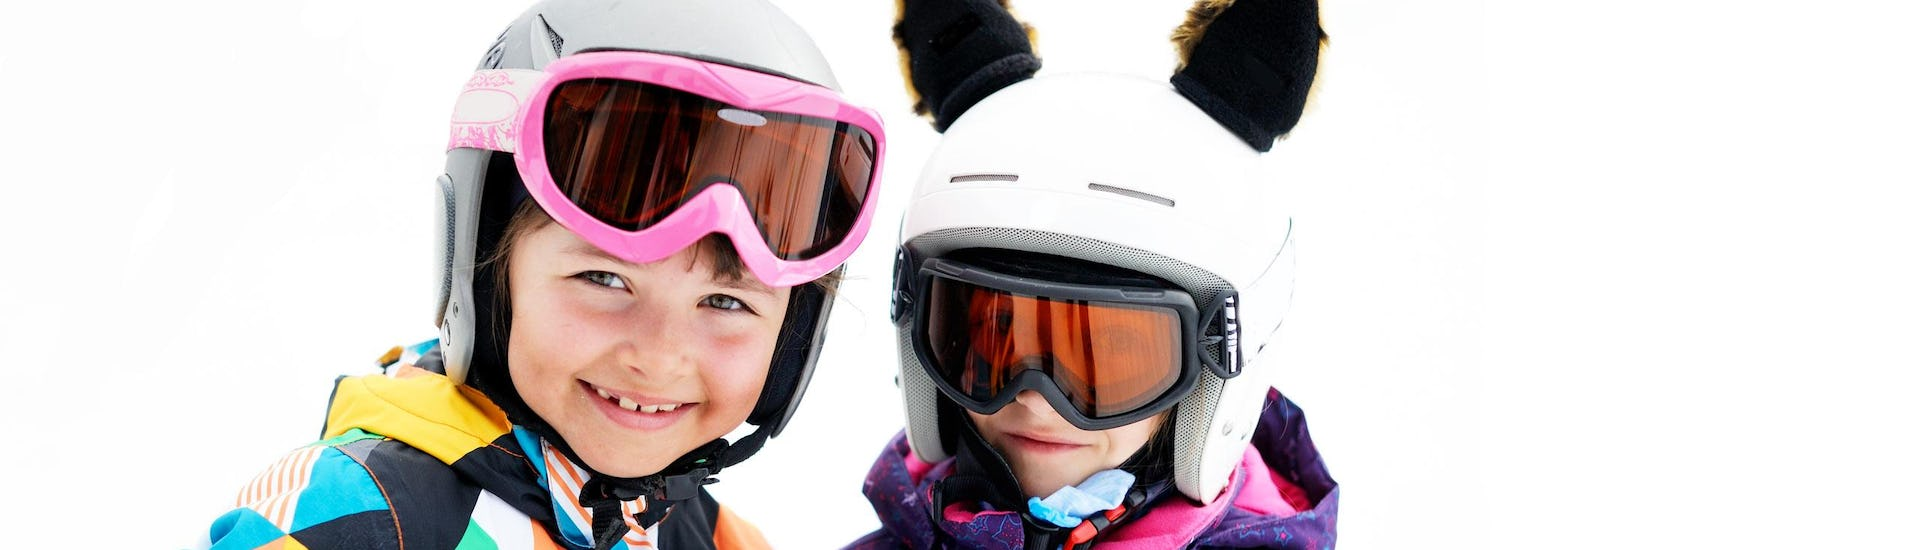 Two young children smiling at the camera during one of the Kids Ski Lessons (3-6 years) - Max 5 - Montana organised by Swiss Mountain Sports.